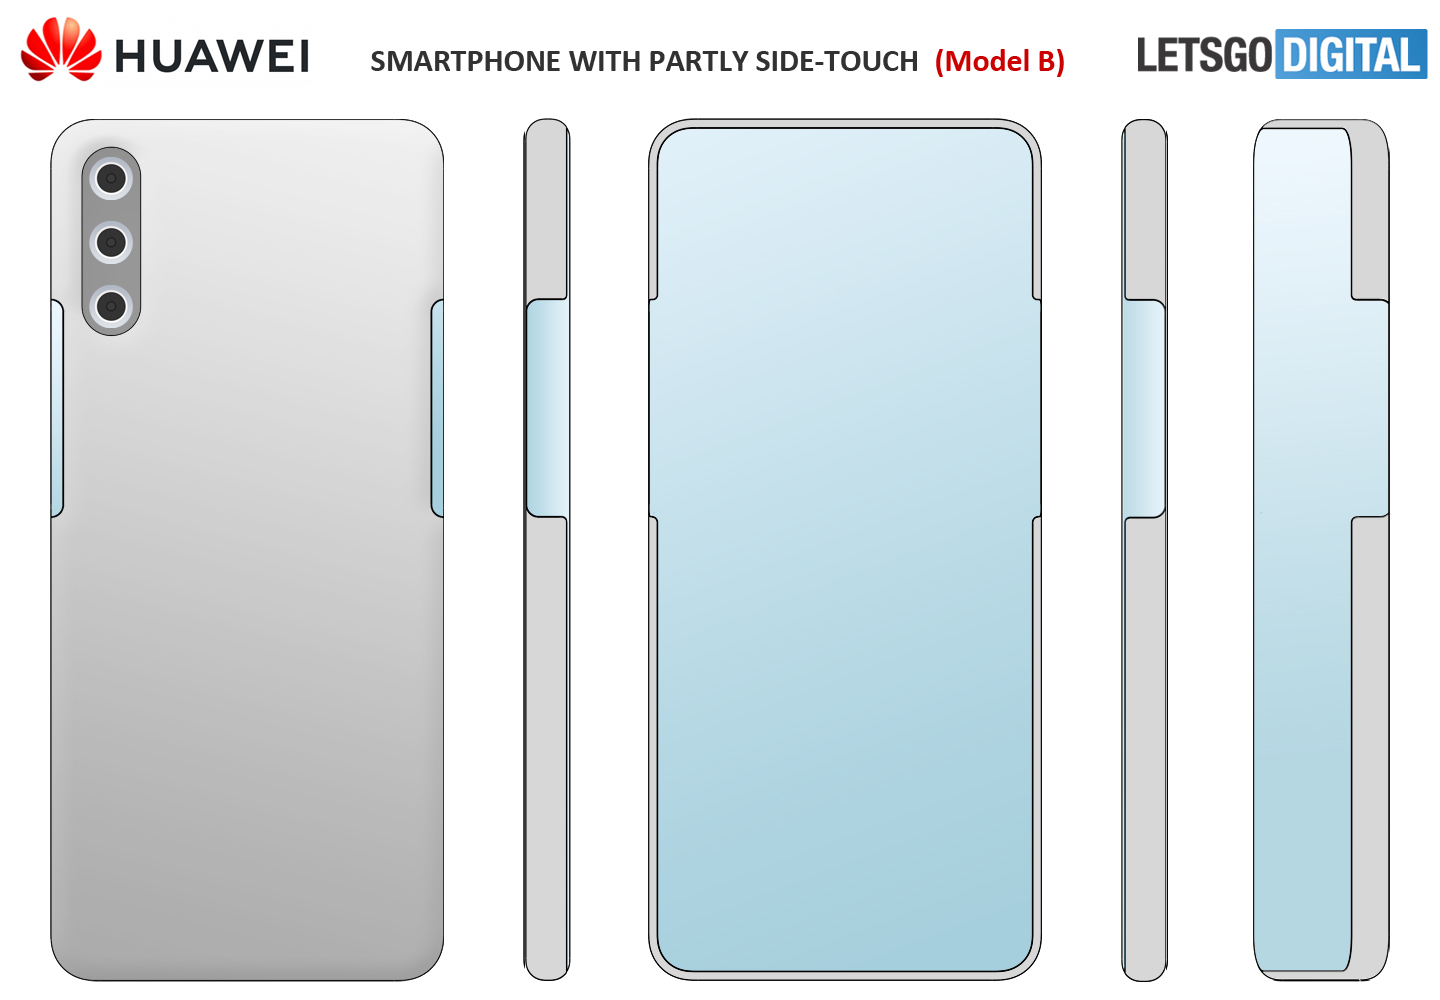 Huawei telefoon side-touch virtuele knoppen